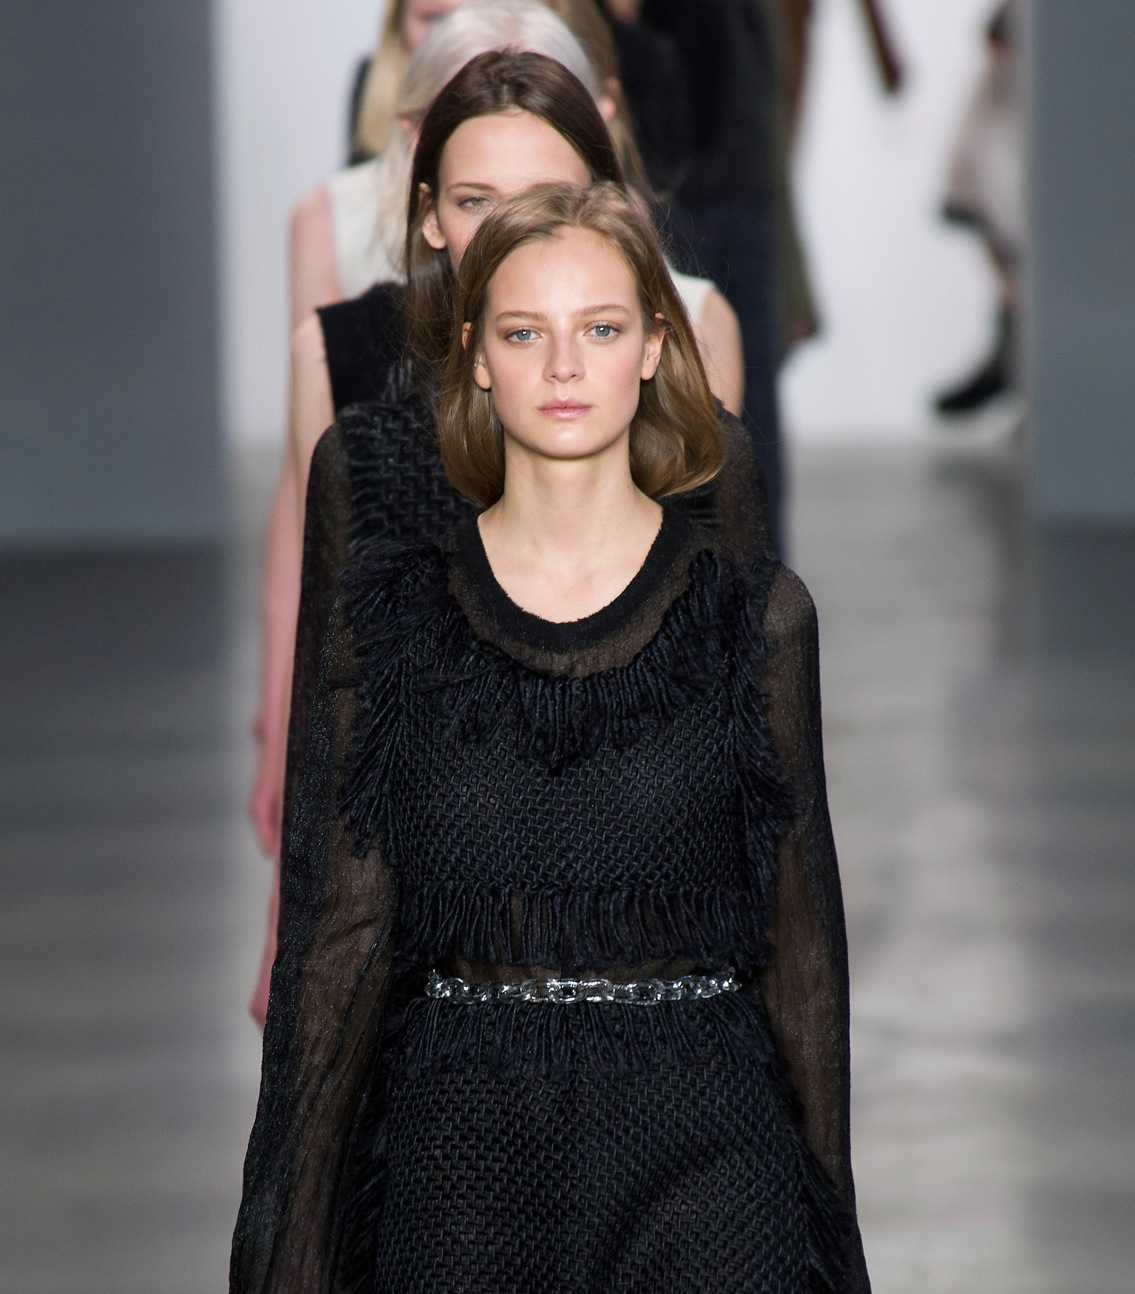 Calvin Klein Show Fall/Winter 2014 Collection During New York Fashion Week